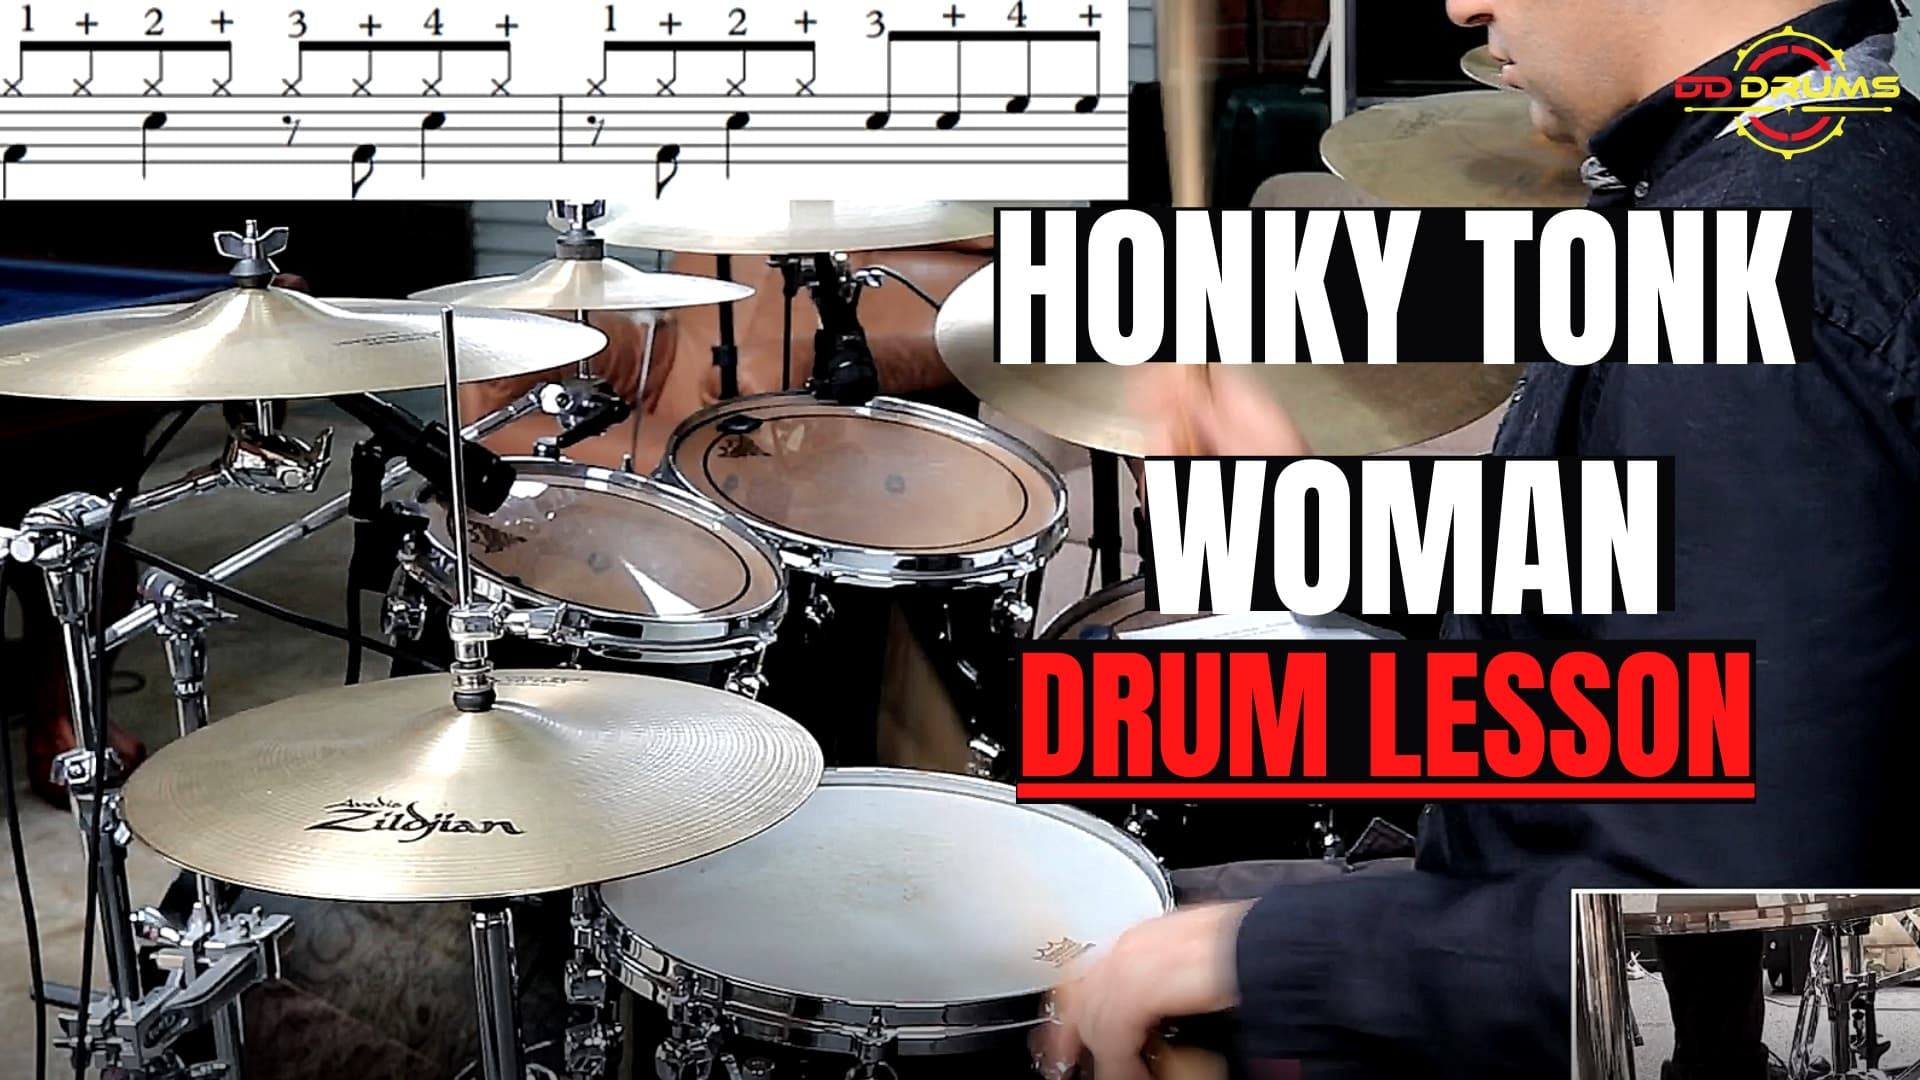 How to play Honky Tonk Woman by The Rolling Stones – Drum Lesson